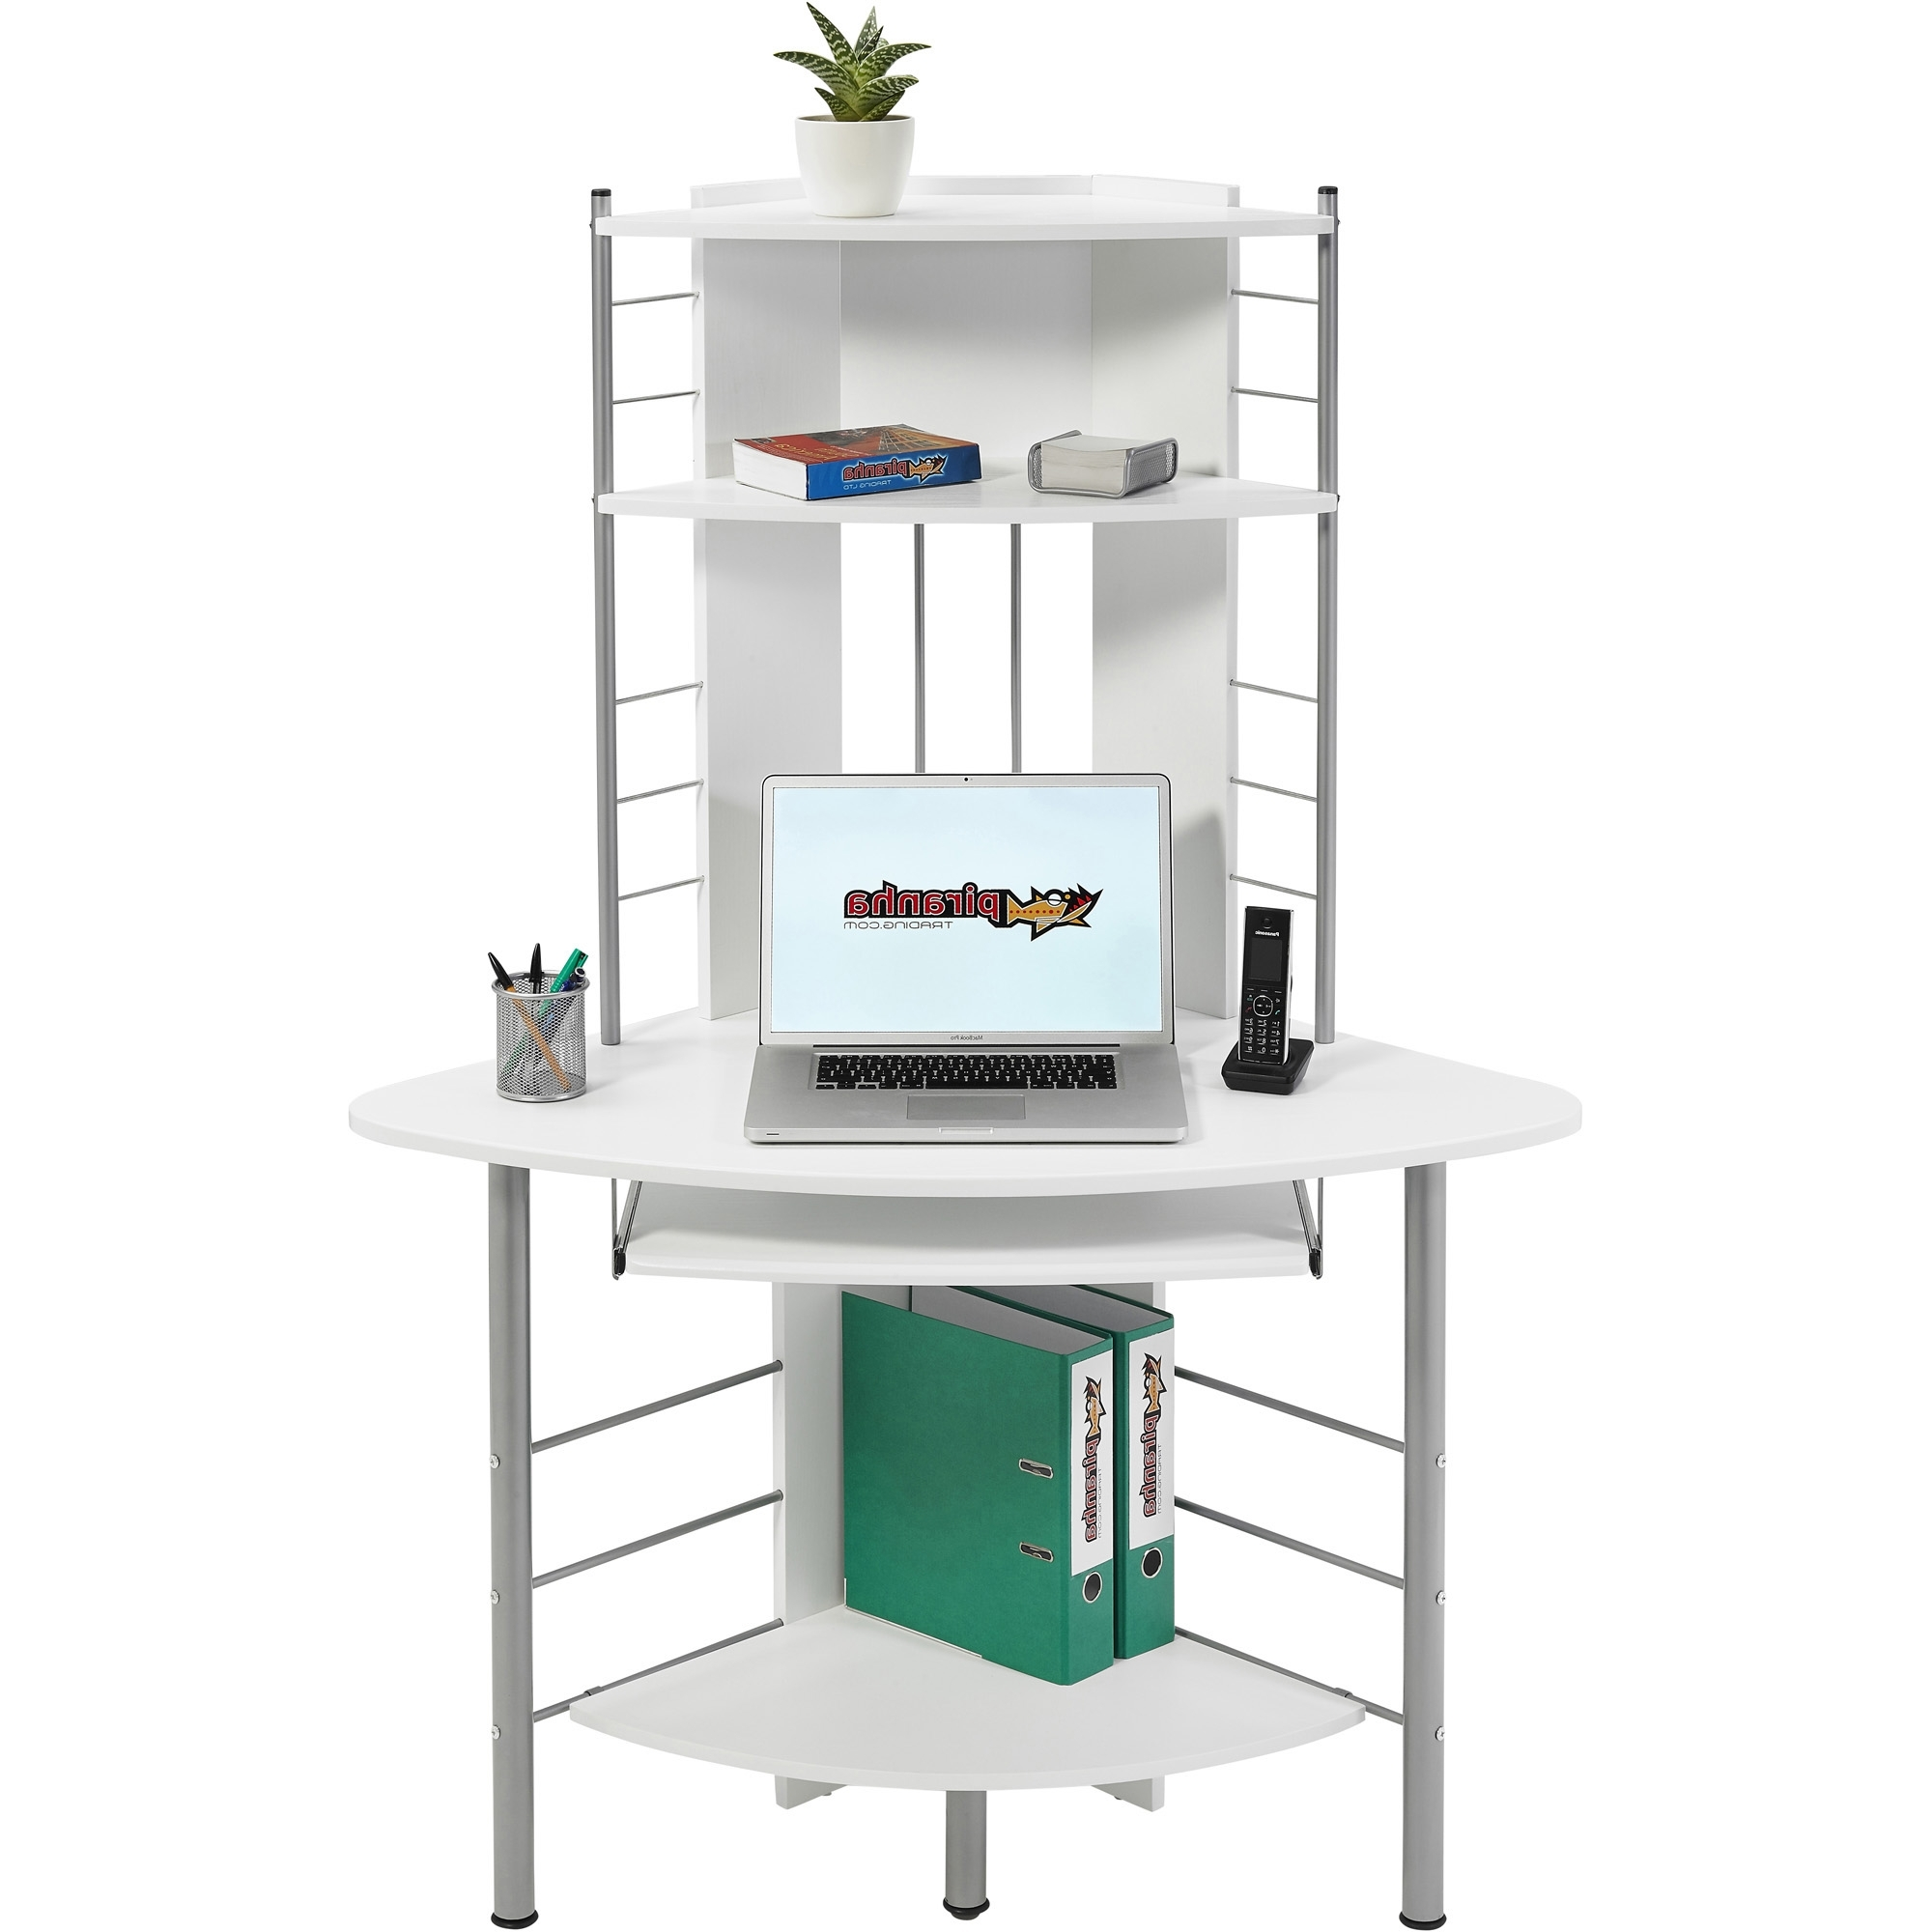 Compact Computer Desks Throughout Well Known Compact Computer Desk With Printer Shelf Newest – Surripui (View 11 of 20)